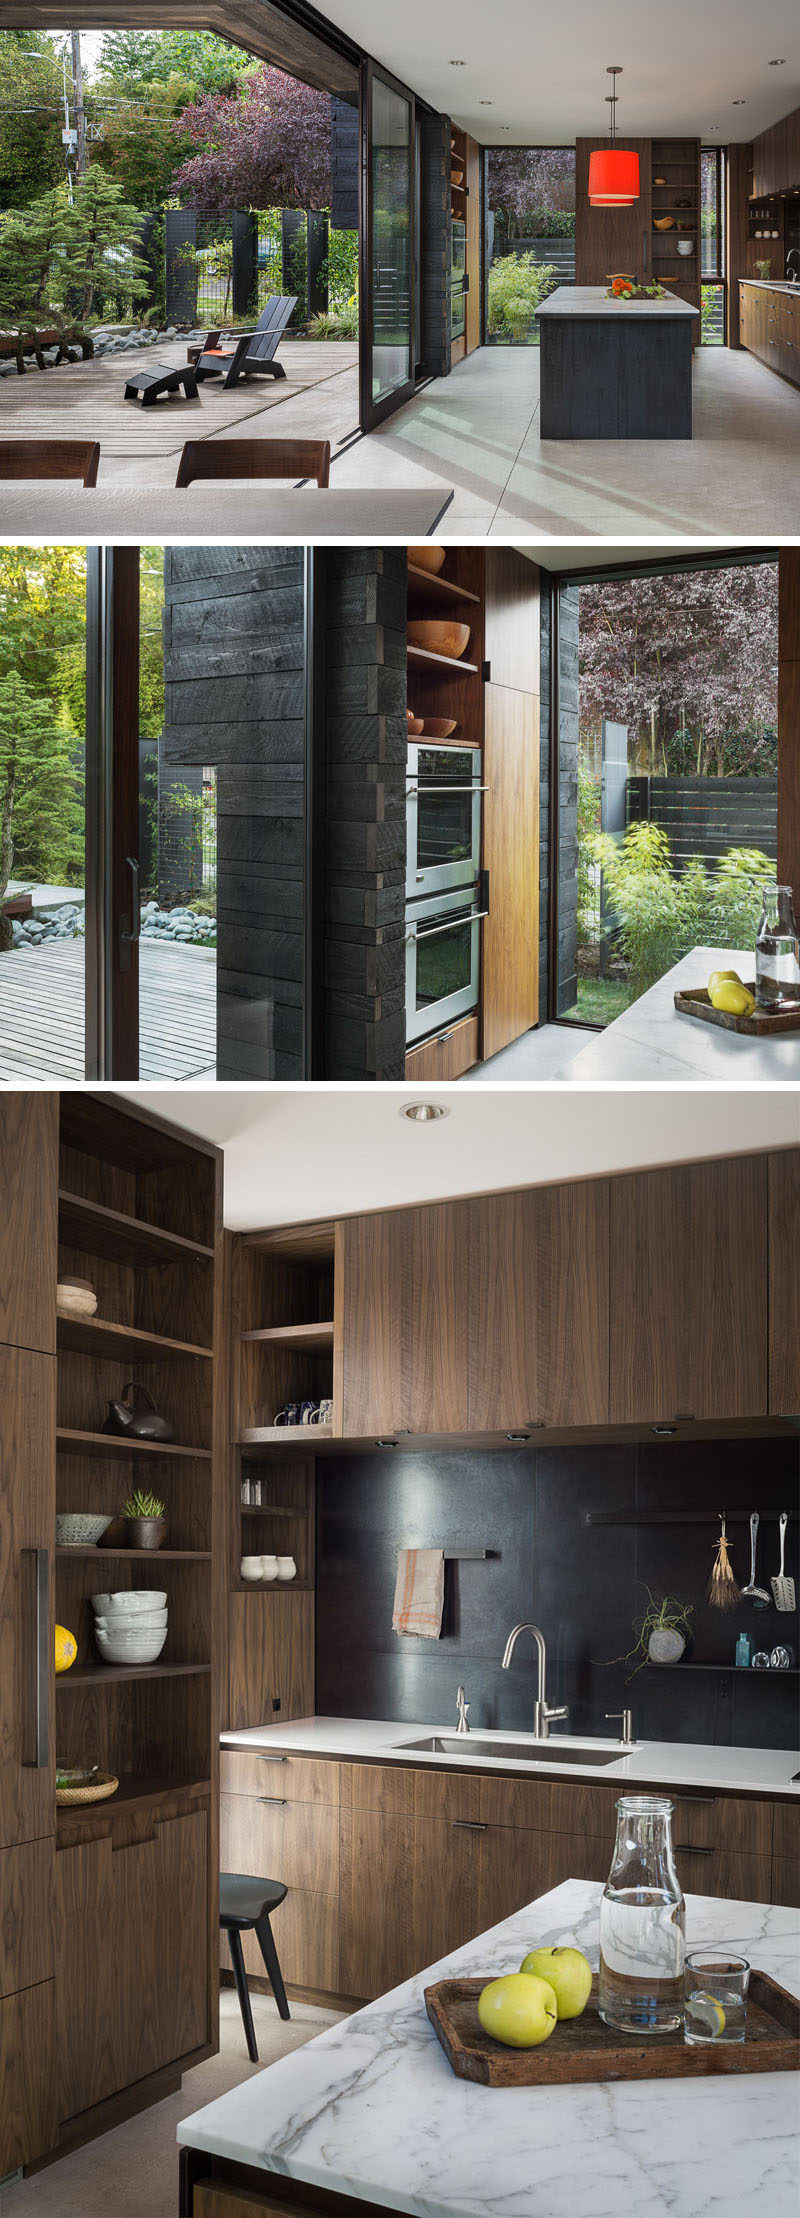 The Glass Walls Of This Modern House Provide An Abundance Of Natural Light The  Kitchen Thatu0027s